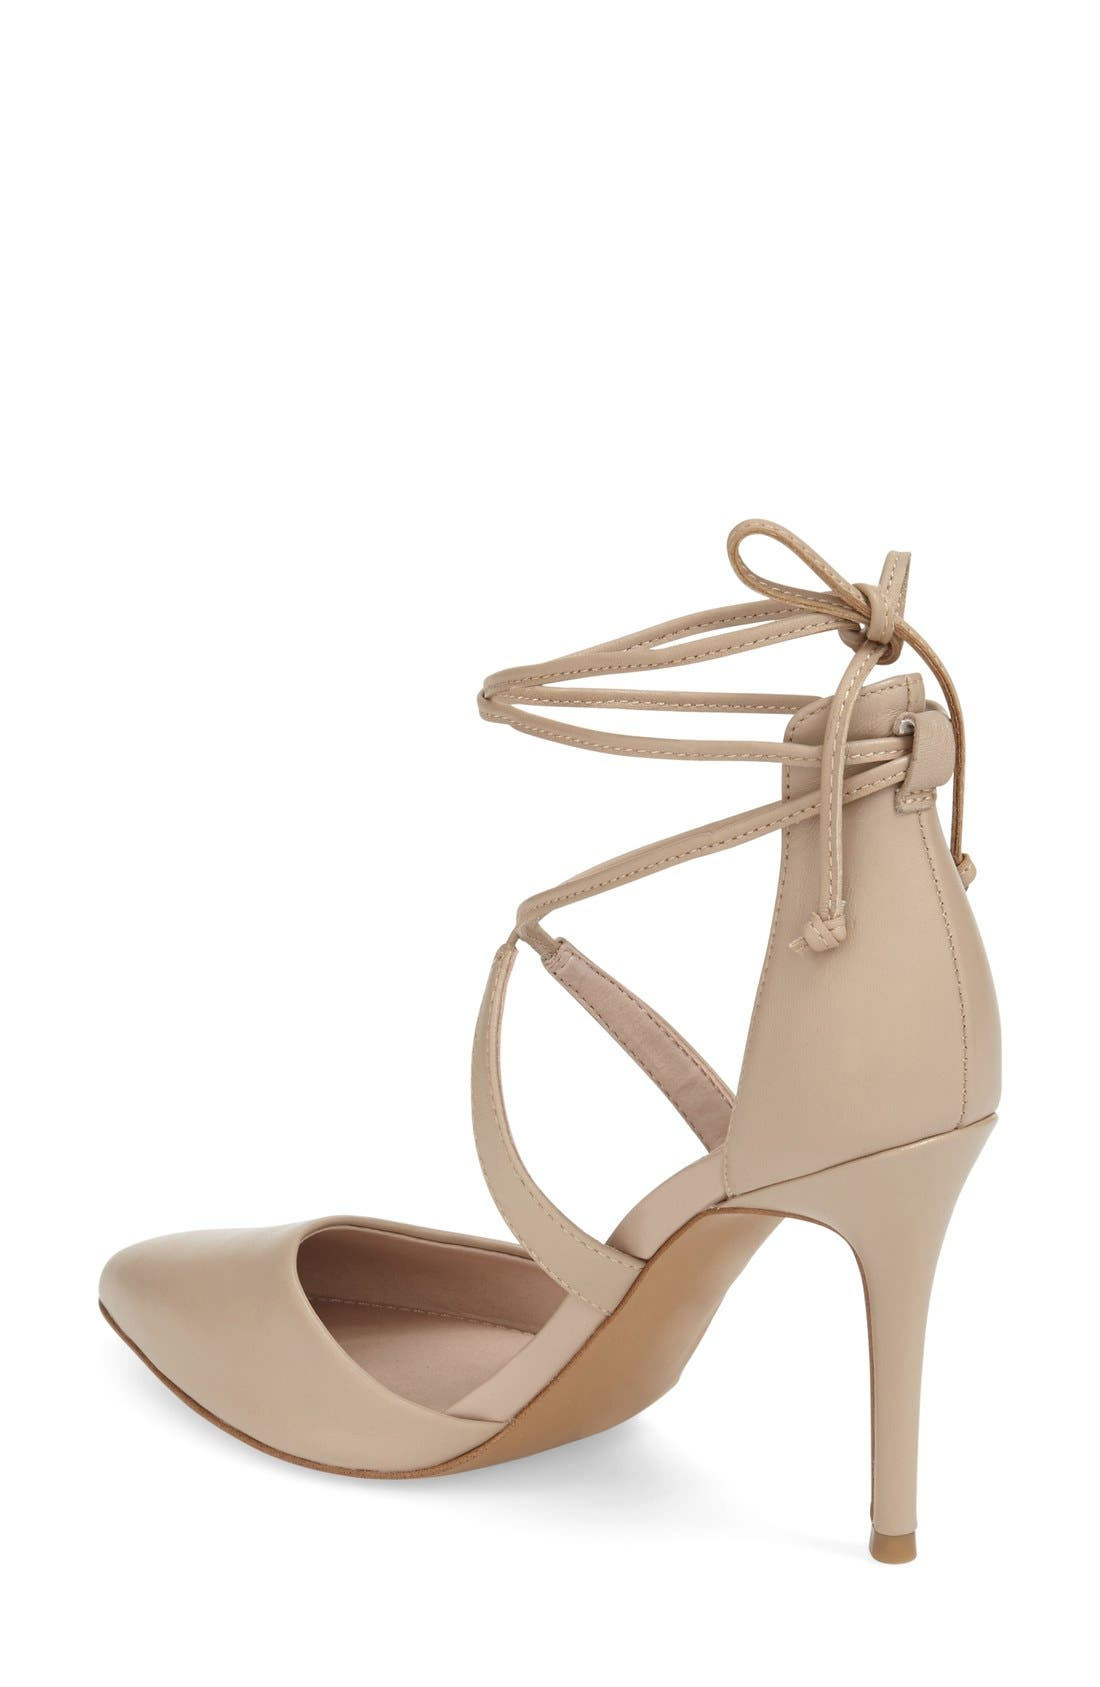 'Elise' d'Orsay Wraparound Lace Pump,                             Alternate thumbnail 2, color,                             Almost Nude Leather